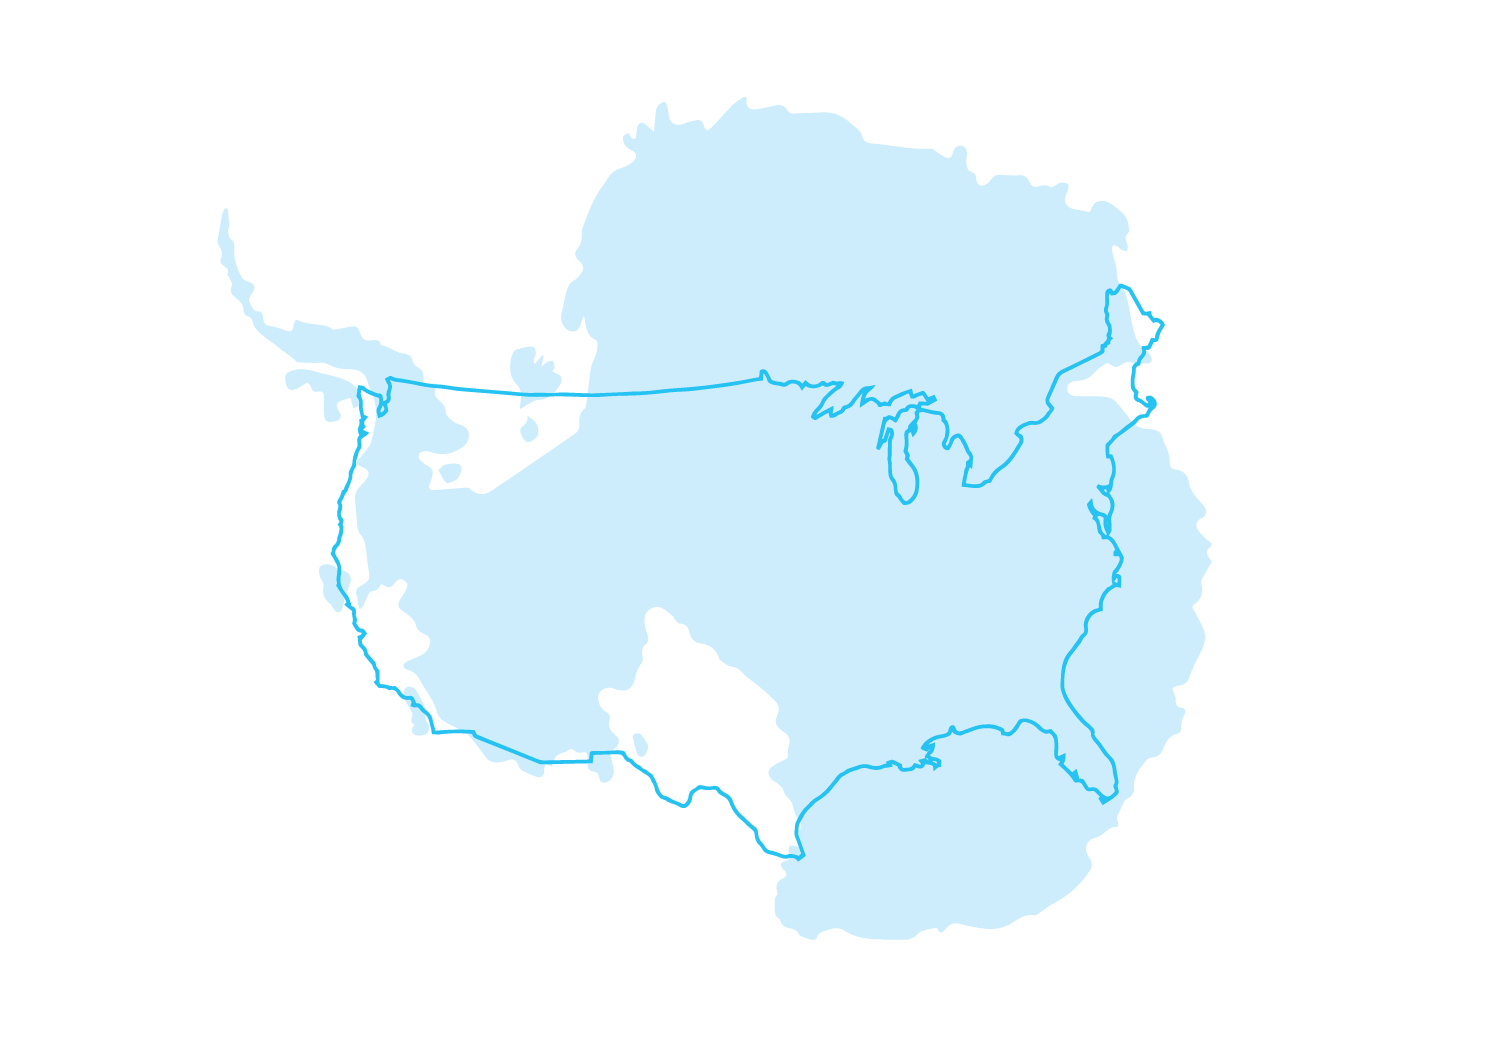 Antarctica & United States (excluding Alaska and Hawaii)